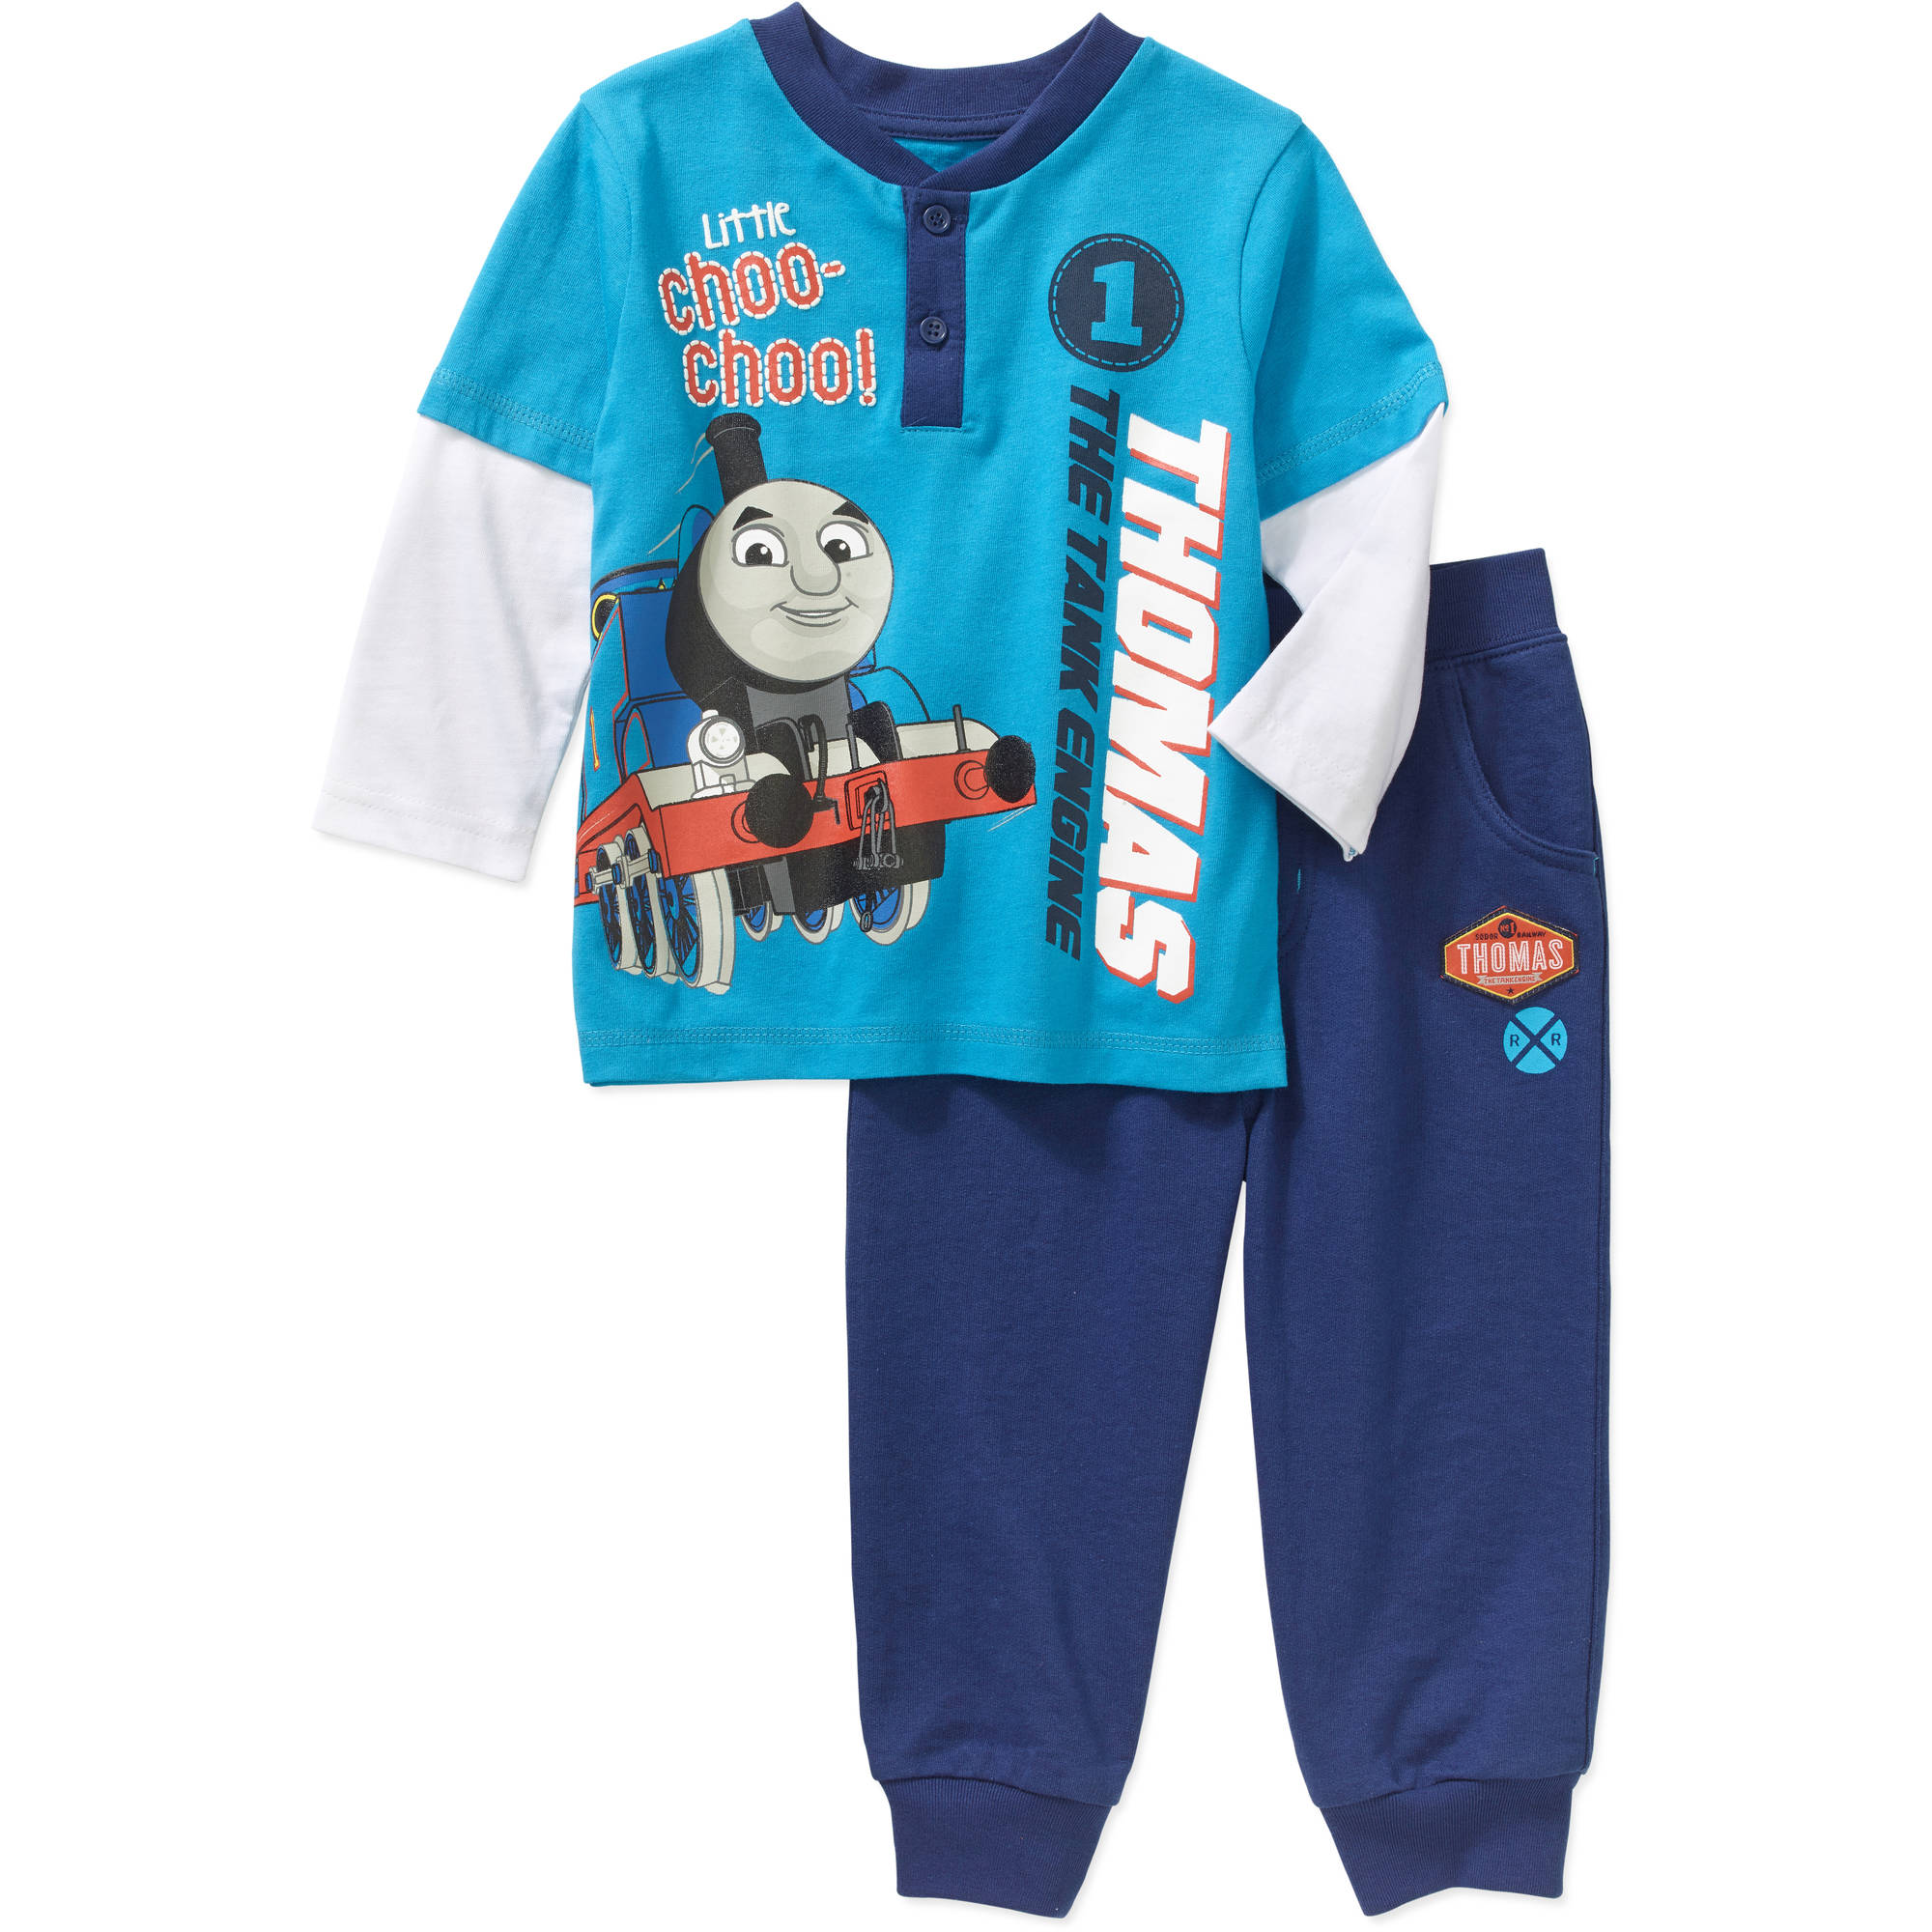 Thomas the Train Newborn Baby Boy Long Sleeve Tee and Pant Set